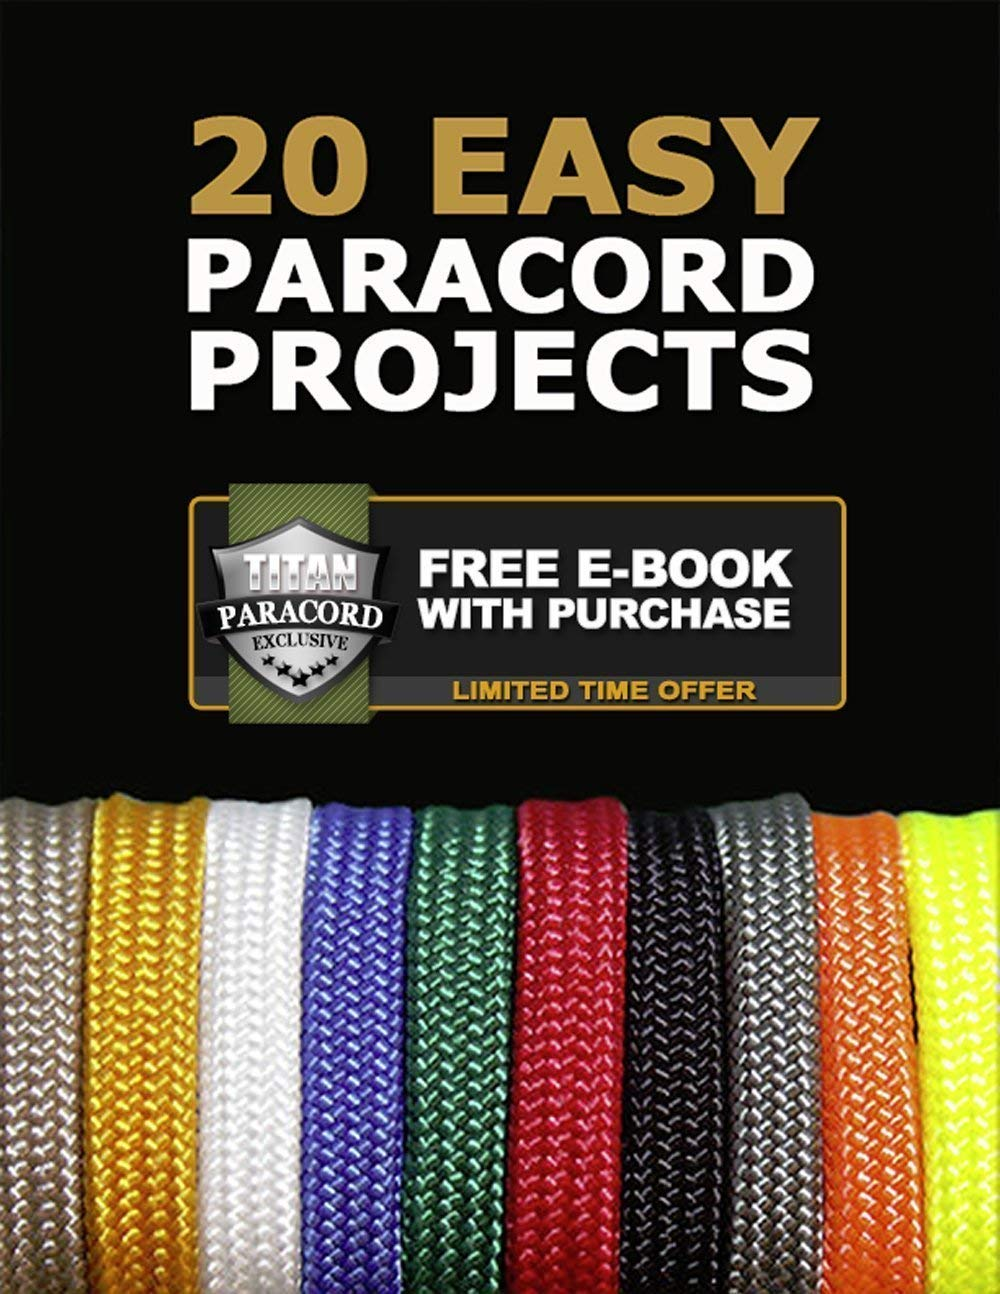 Titan SurvivorCord | Desert TAN | 103 Feet | Patented Military Type III 550 Paracord/Parachute Cord (3/16'' Diameter) with Integrated Fishing Line, Fire-Starter, and Utility Wire. by Titan Paracord (Image #10)